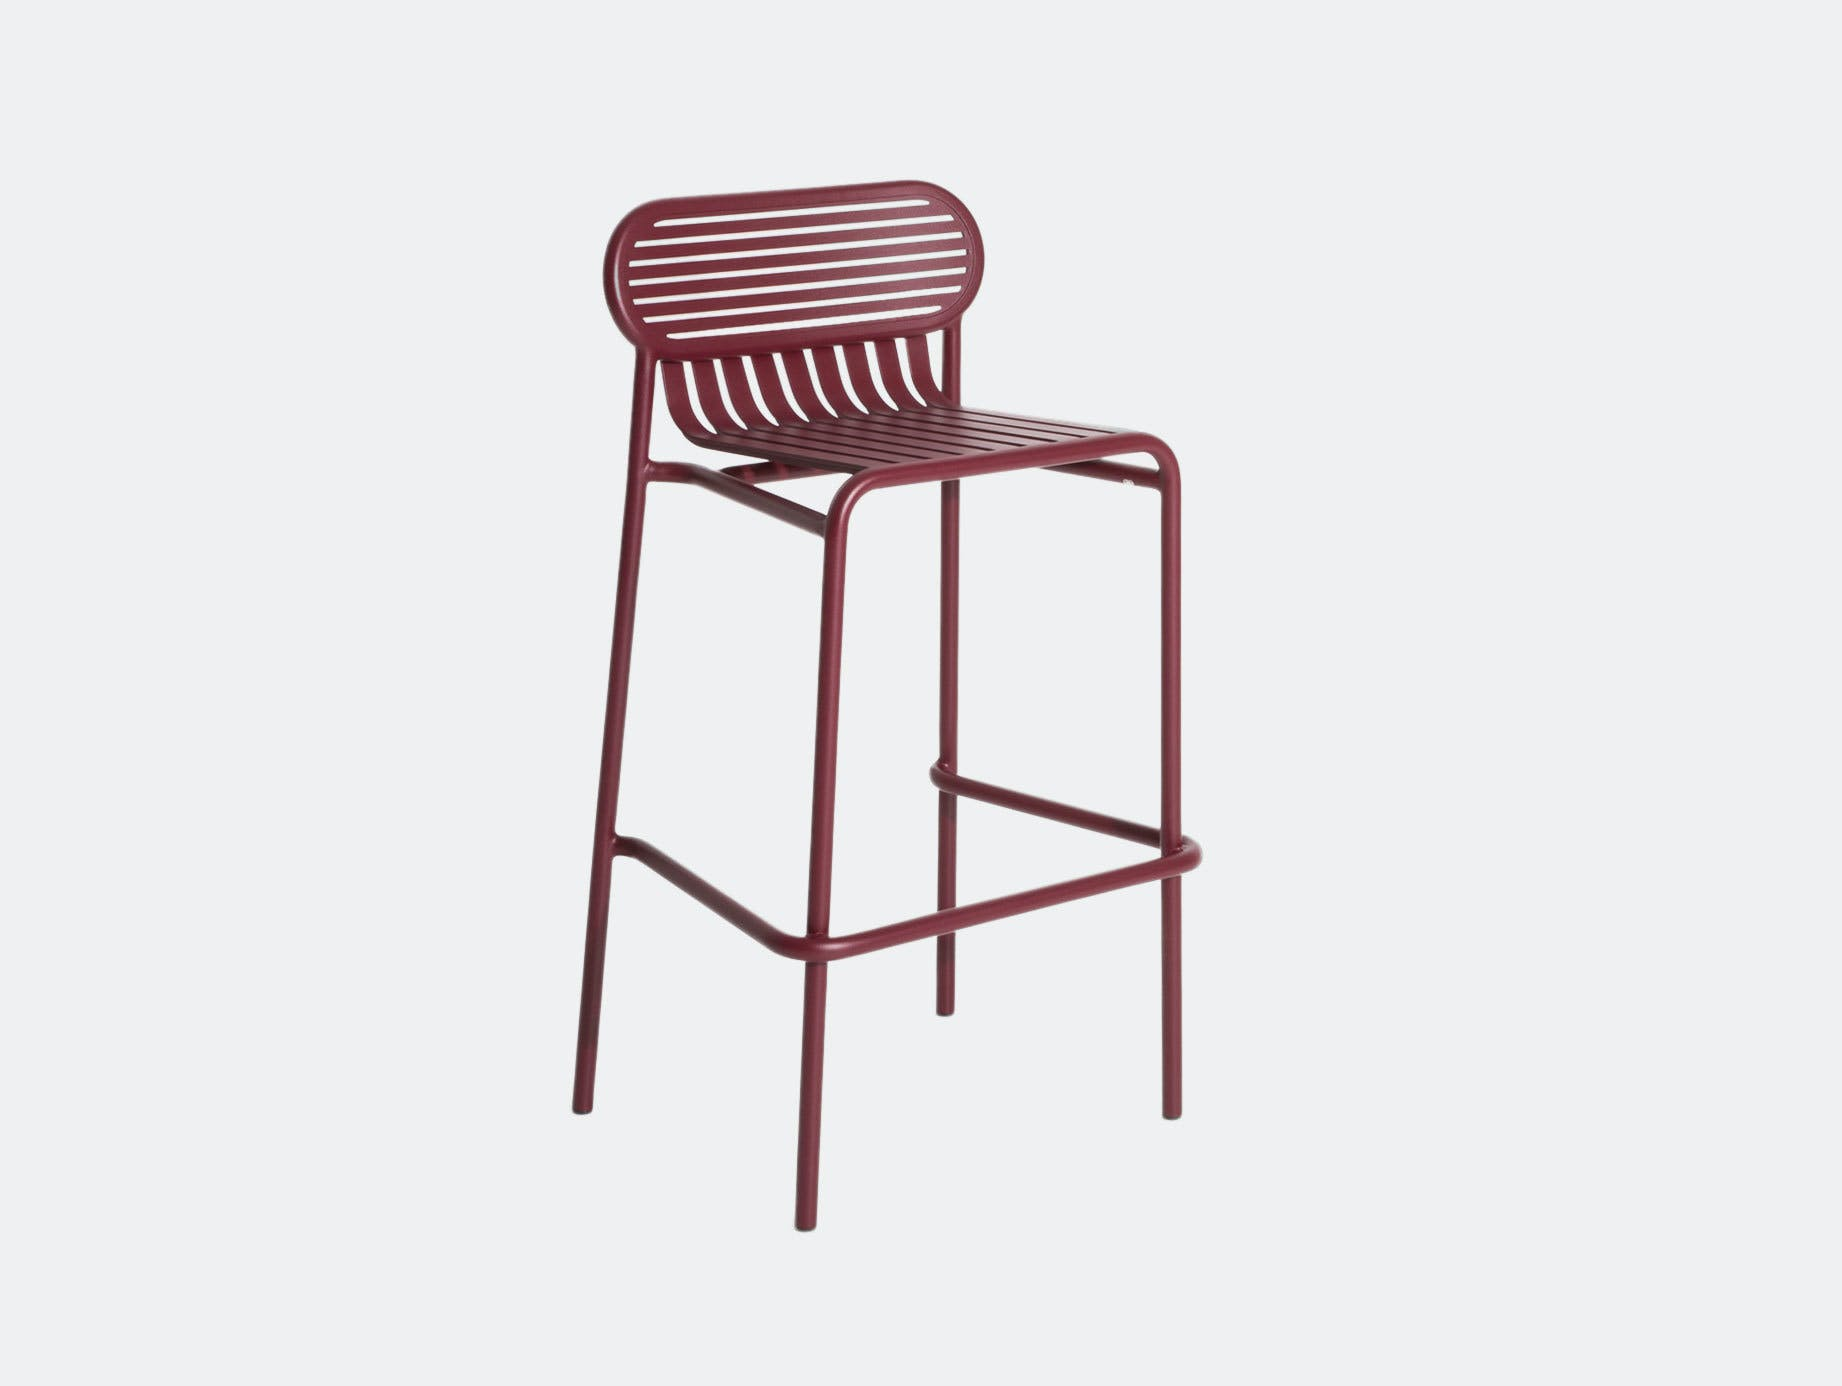 Petite Friture Week End Outdoor Stool red Studio Brichet Ziegler